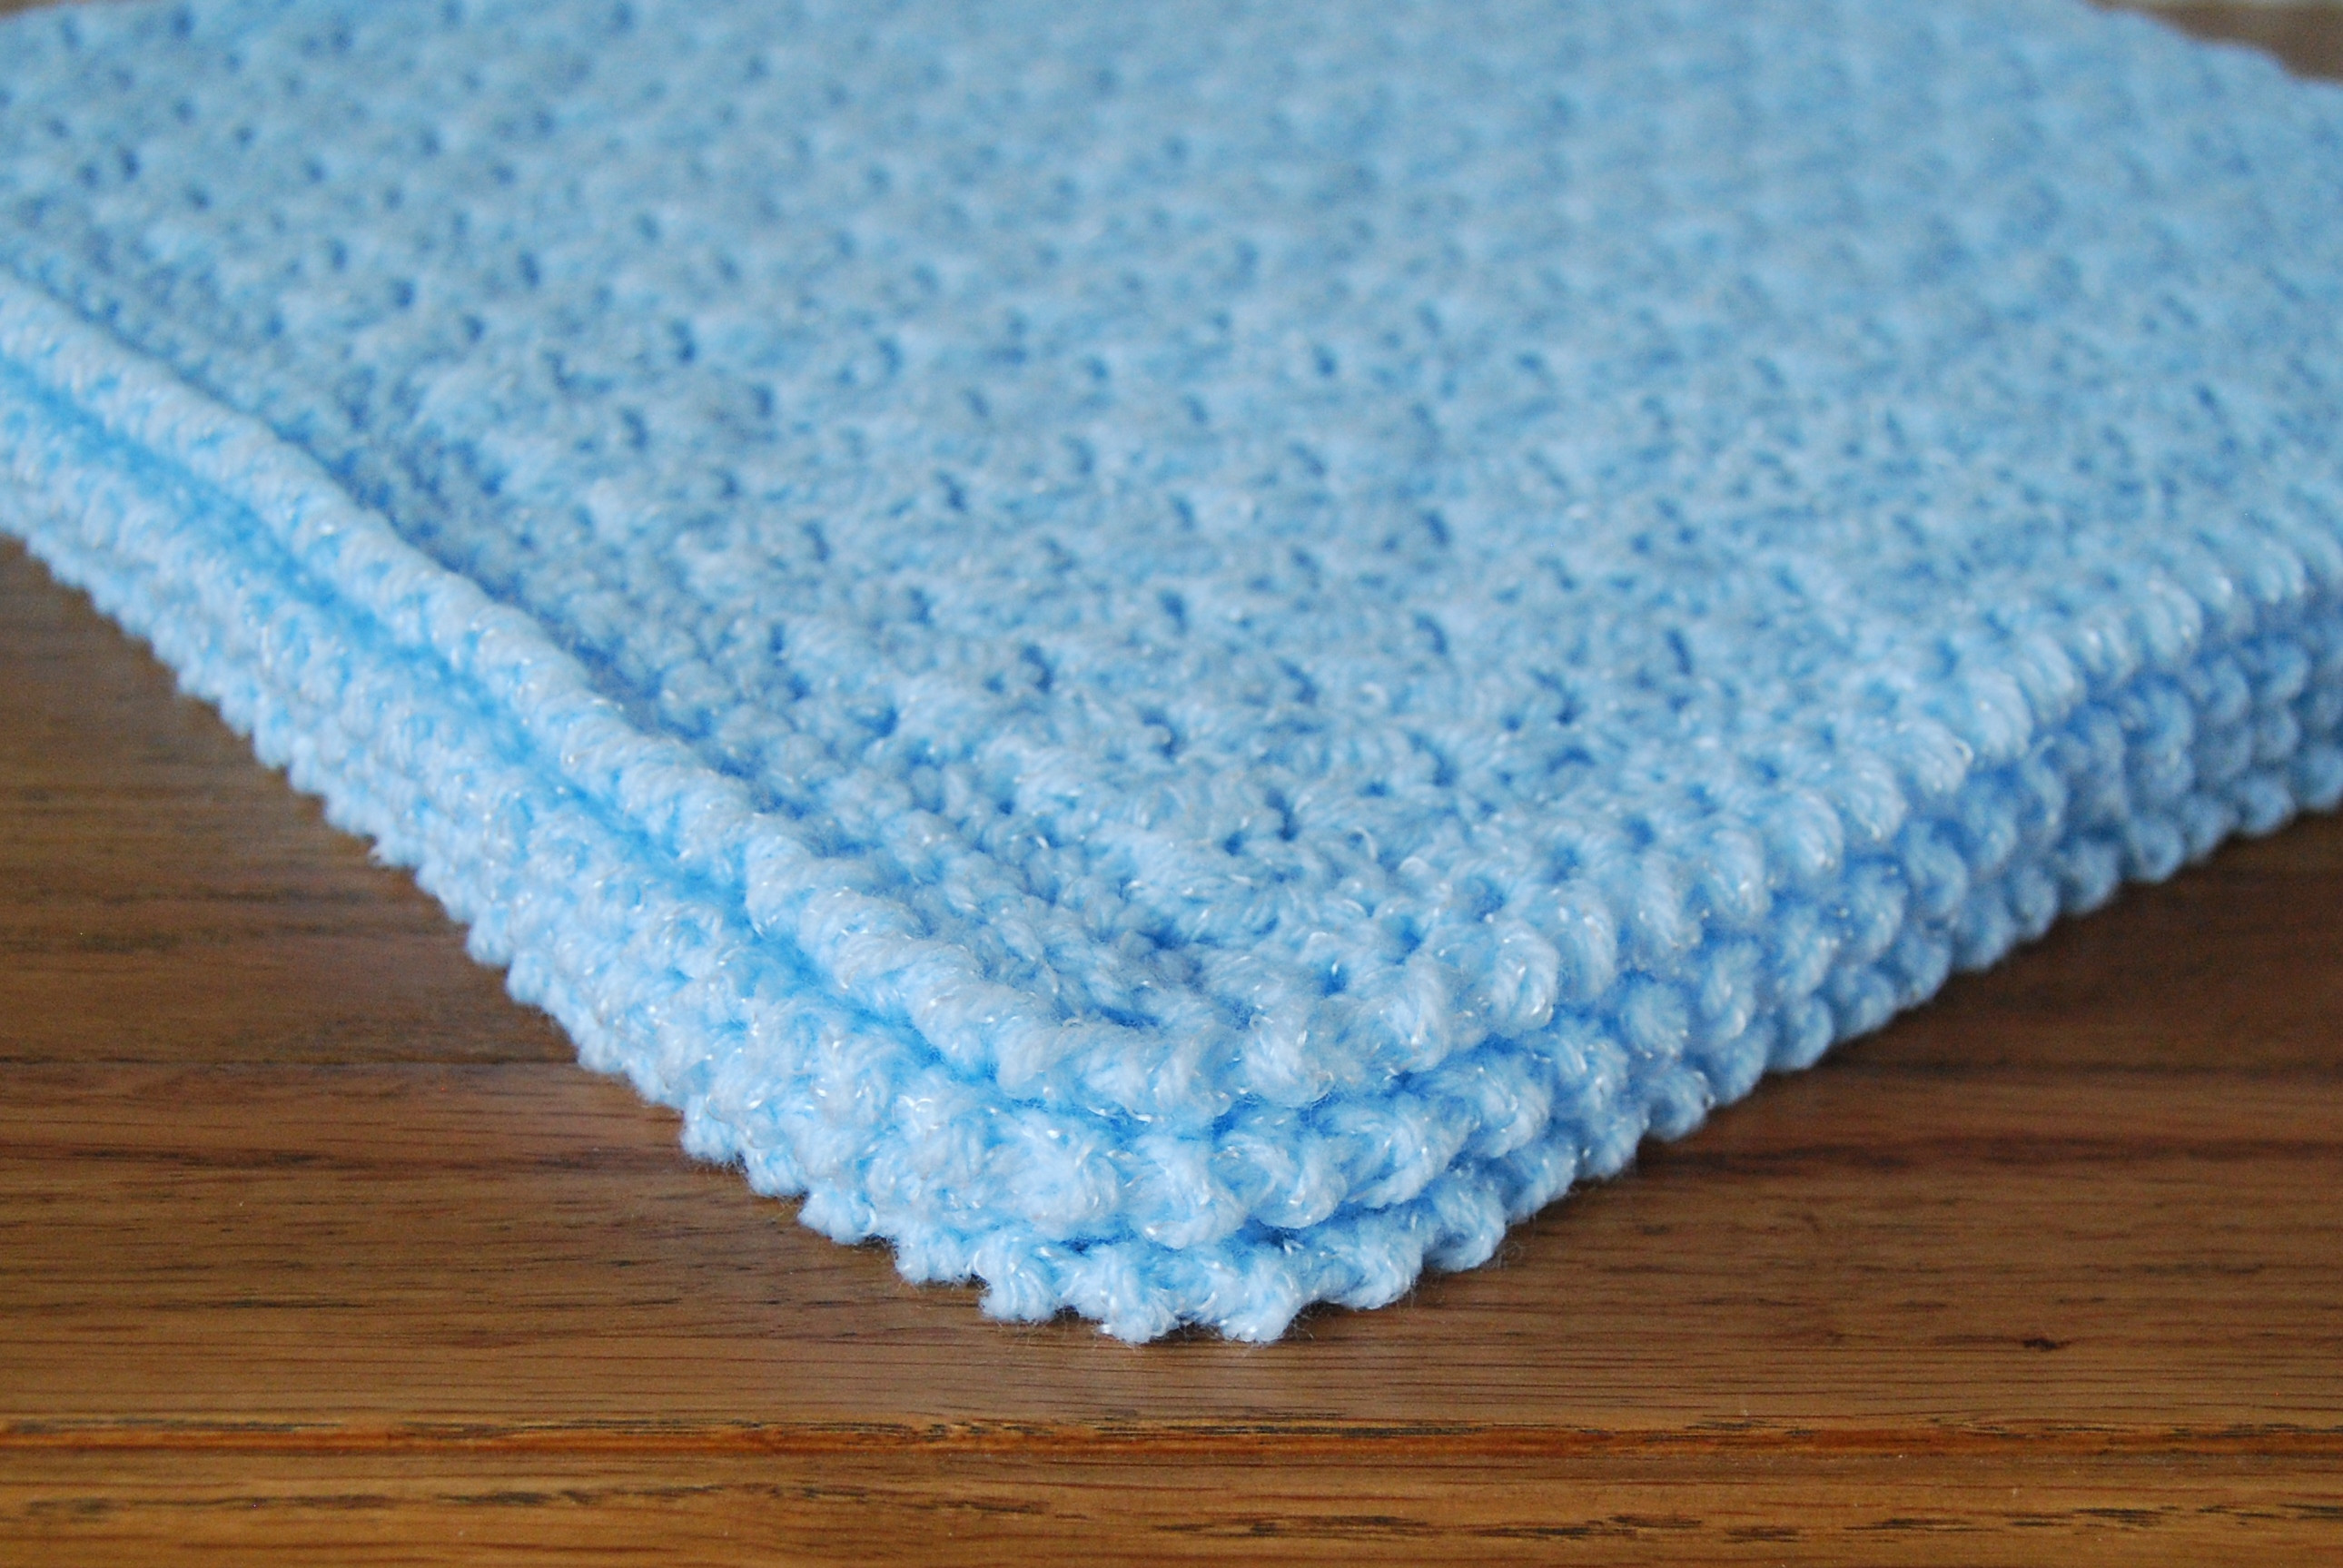 Baby Boy Crochet Blanket Patterns Lovely Beautiful Baby Boy Blanket Crochet Pattern for Pram Of Baby Boy Crochet Blanket Patterns Lovely Navy and Teal for A Baby Boy